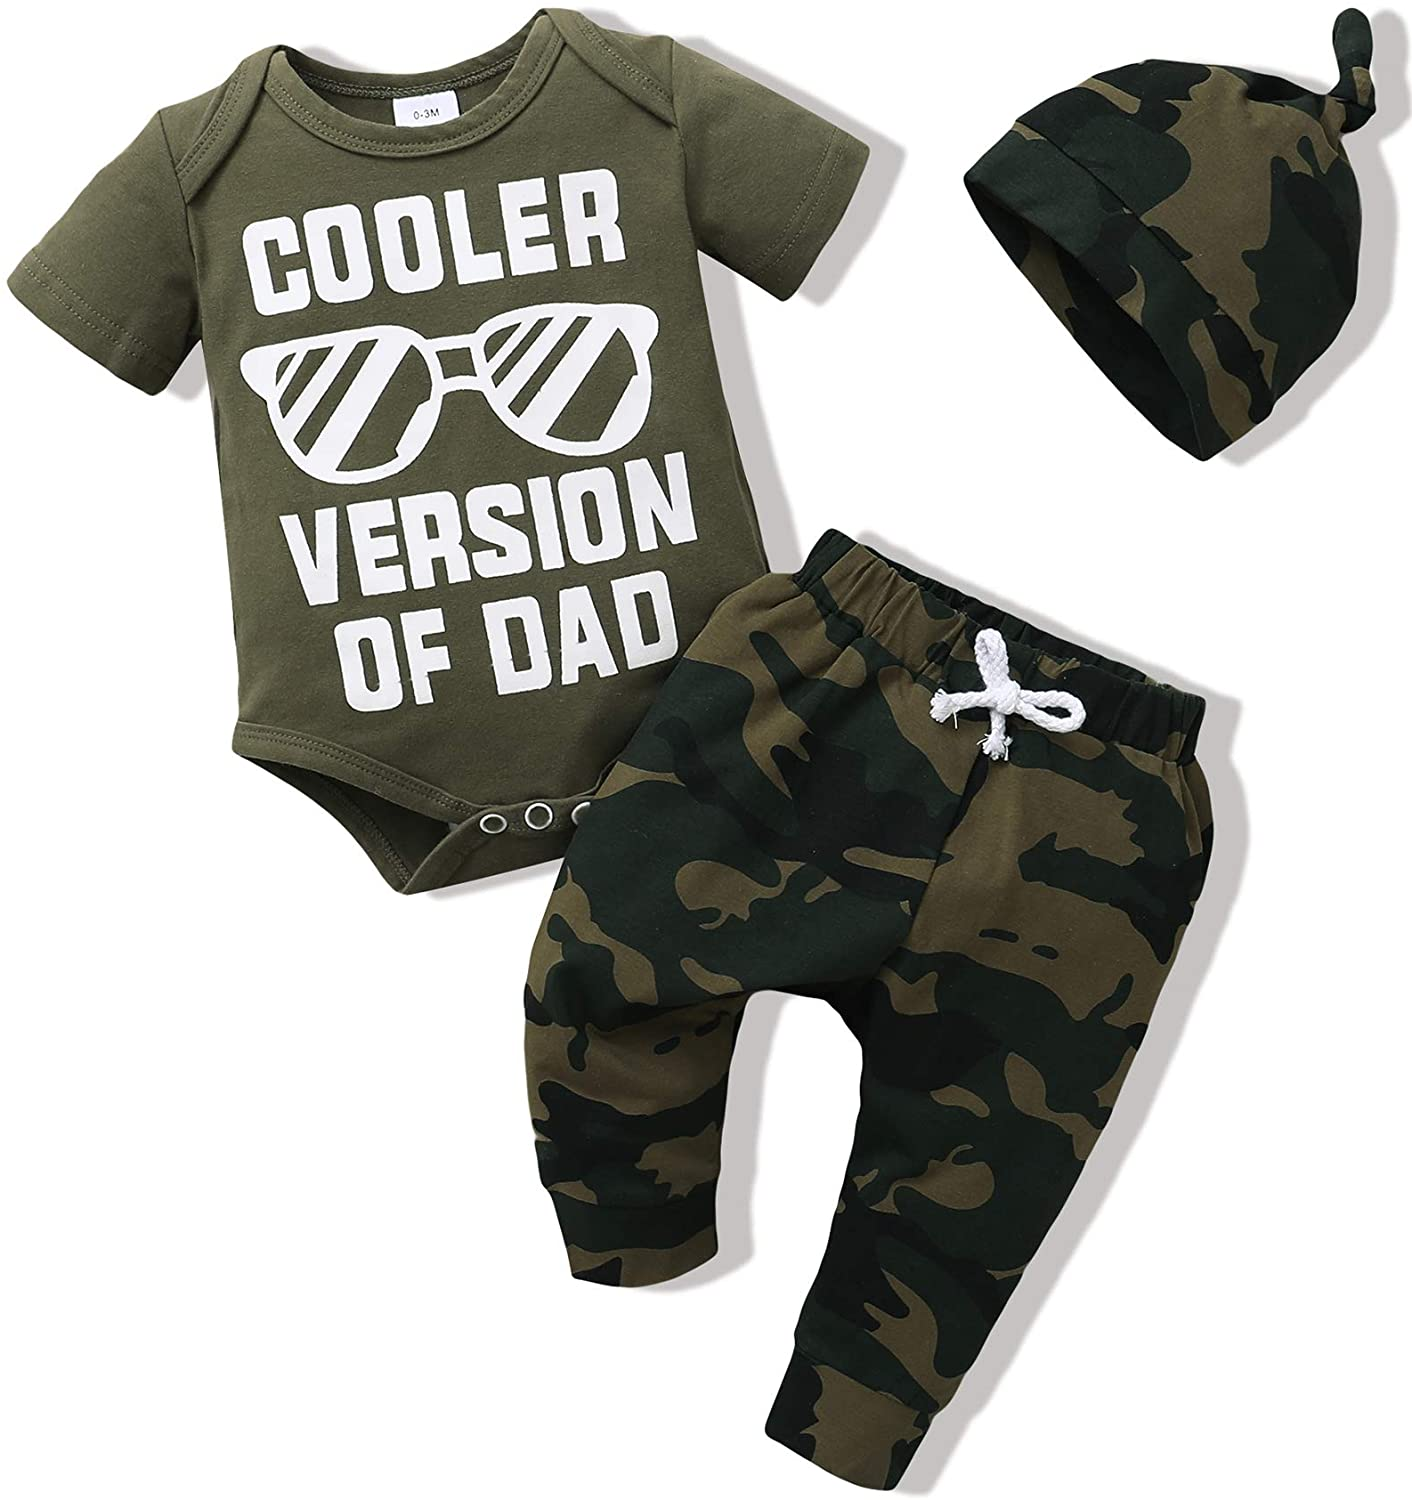 Baby Boy Clothes Toddler Boy Outfit Letter Print Short Sleeve Romper+Long Pants+Hat 3PC Gift Newborn Clothing Set